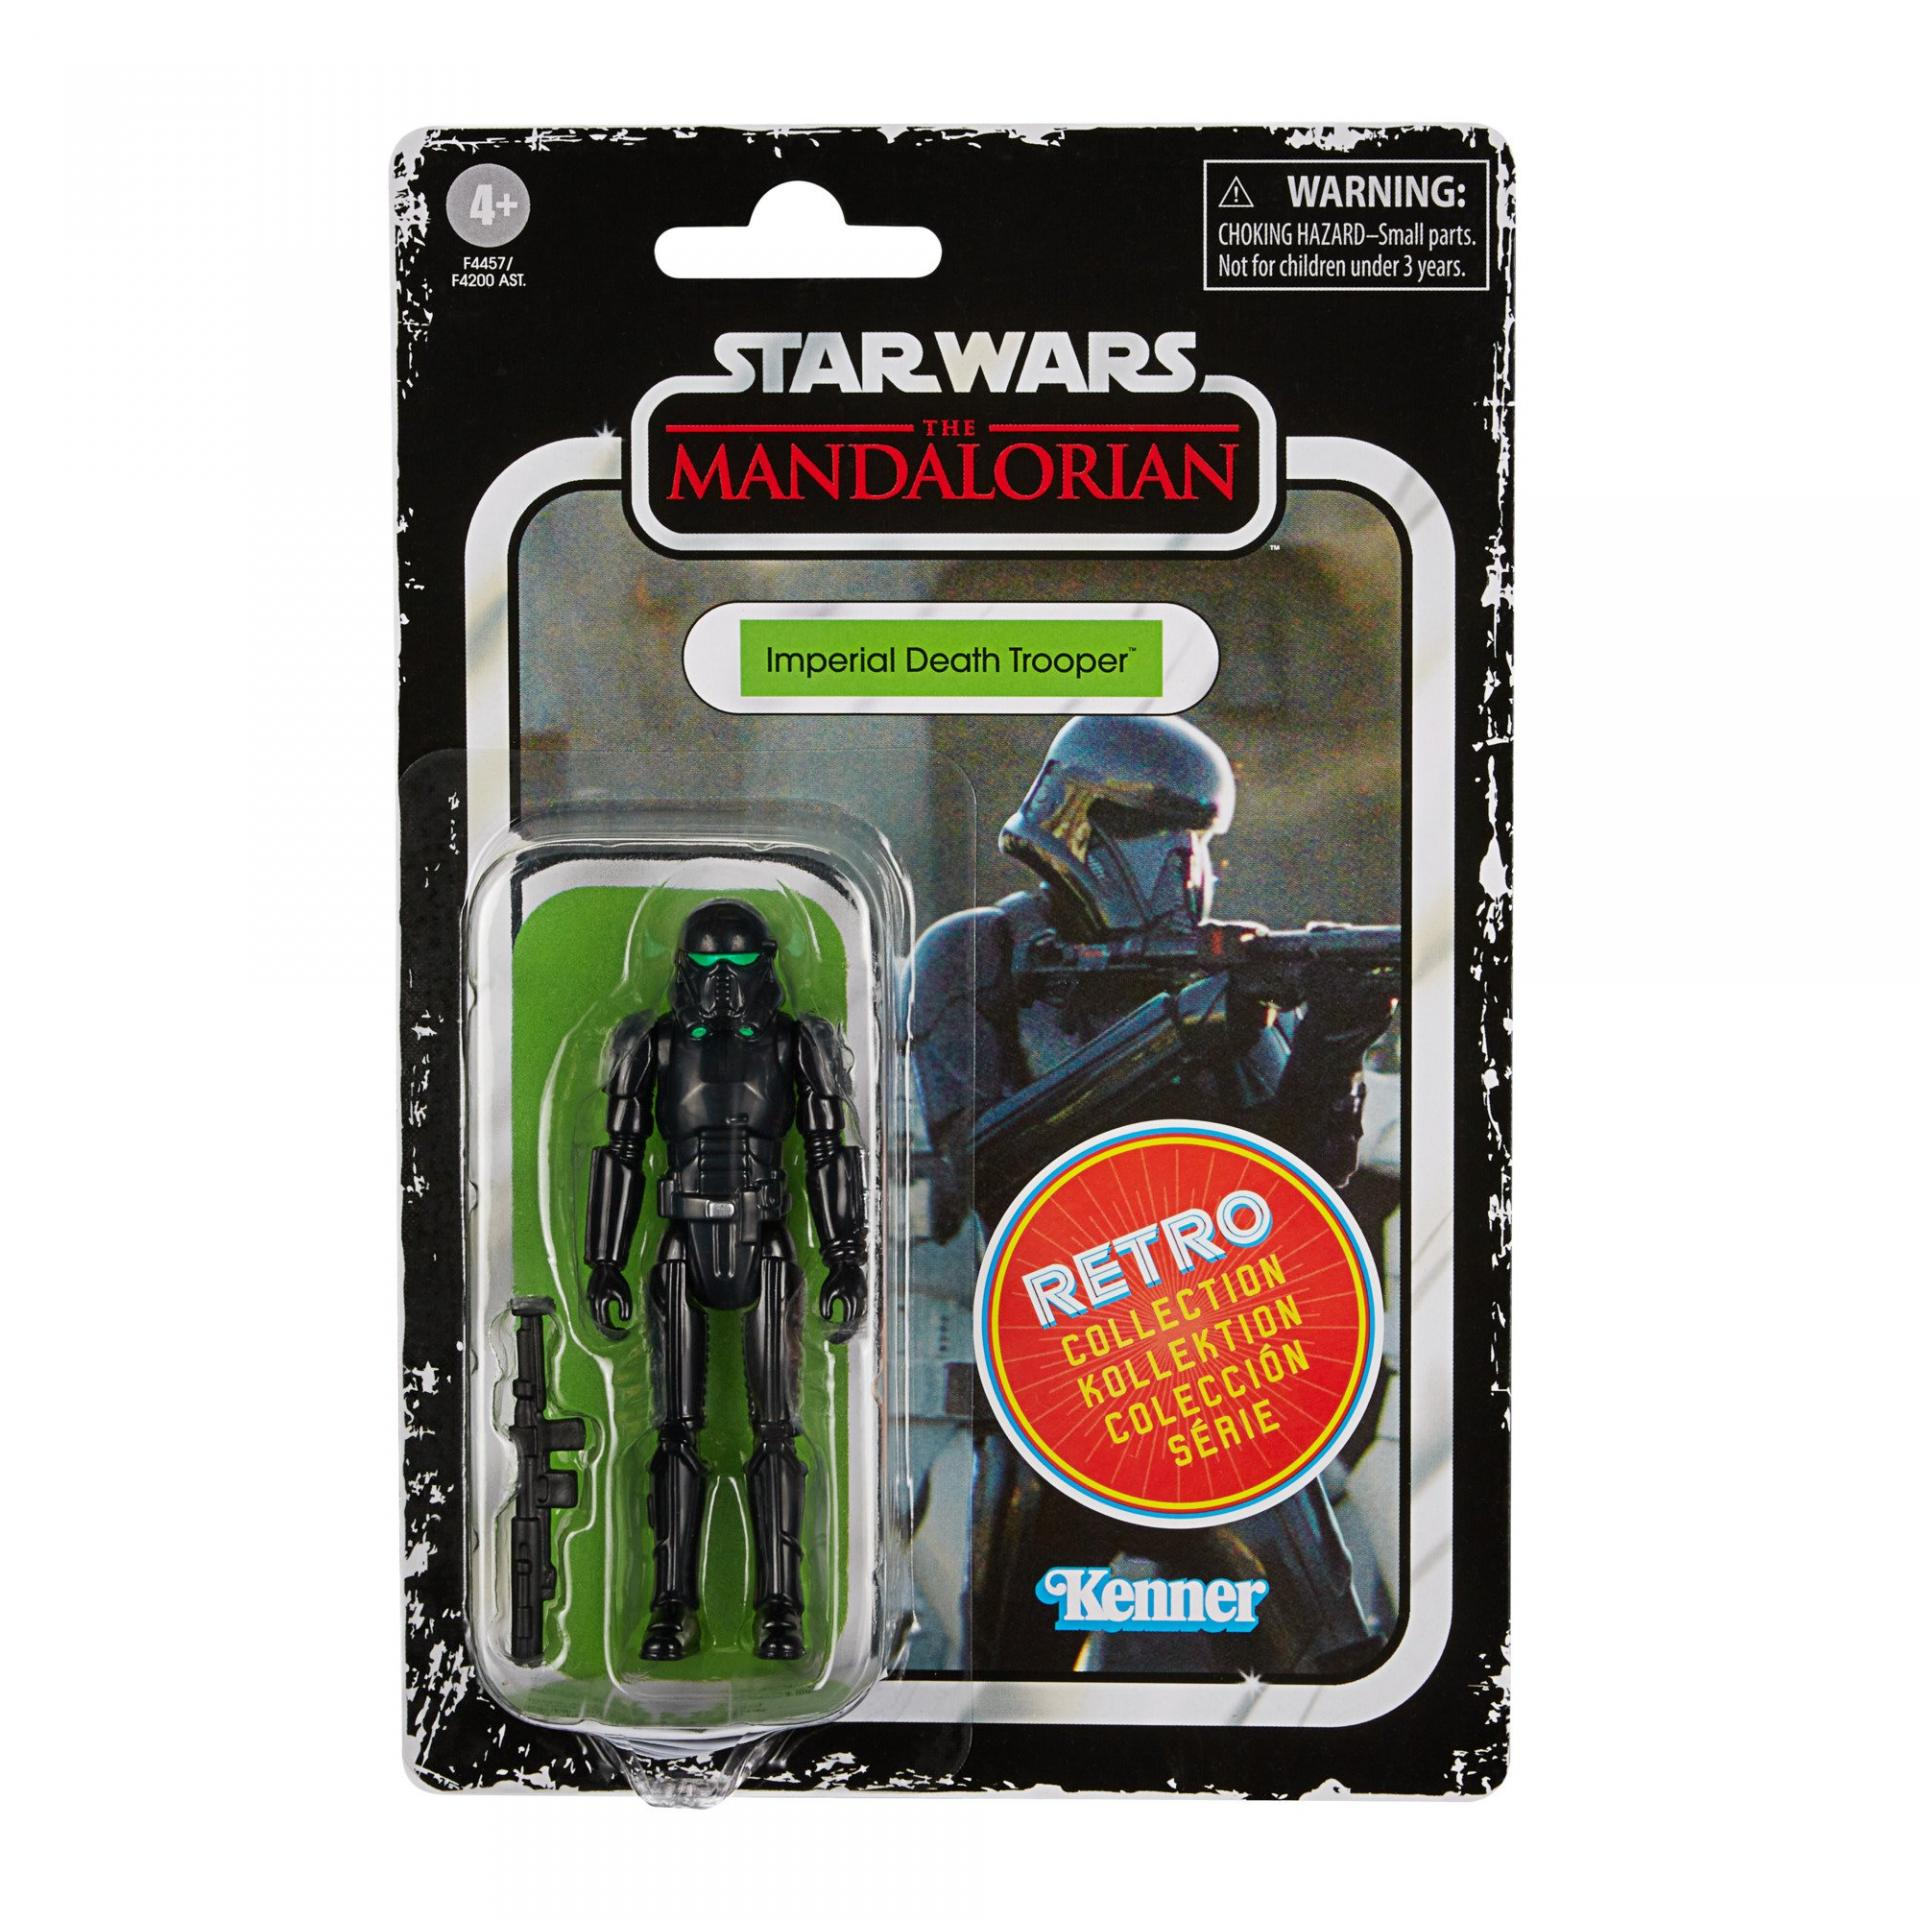 Tar wars the retro collection the mandalorian imperial death trooper5